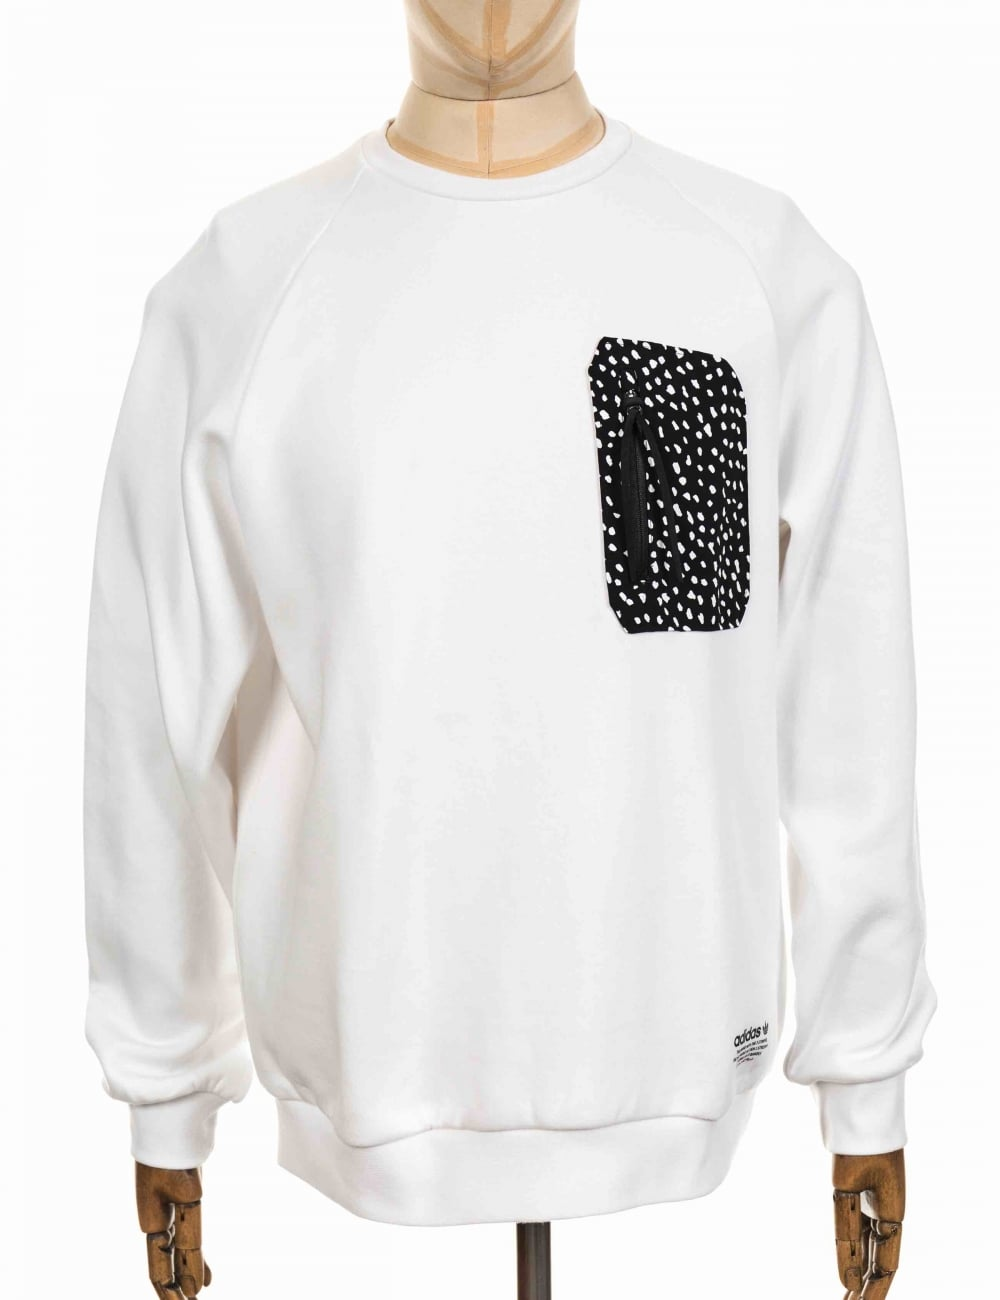 51ce2bc02 Adidas Originals NMD Pocket Crewneck Sweeatshirt - White - Clothing ...